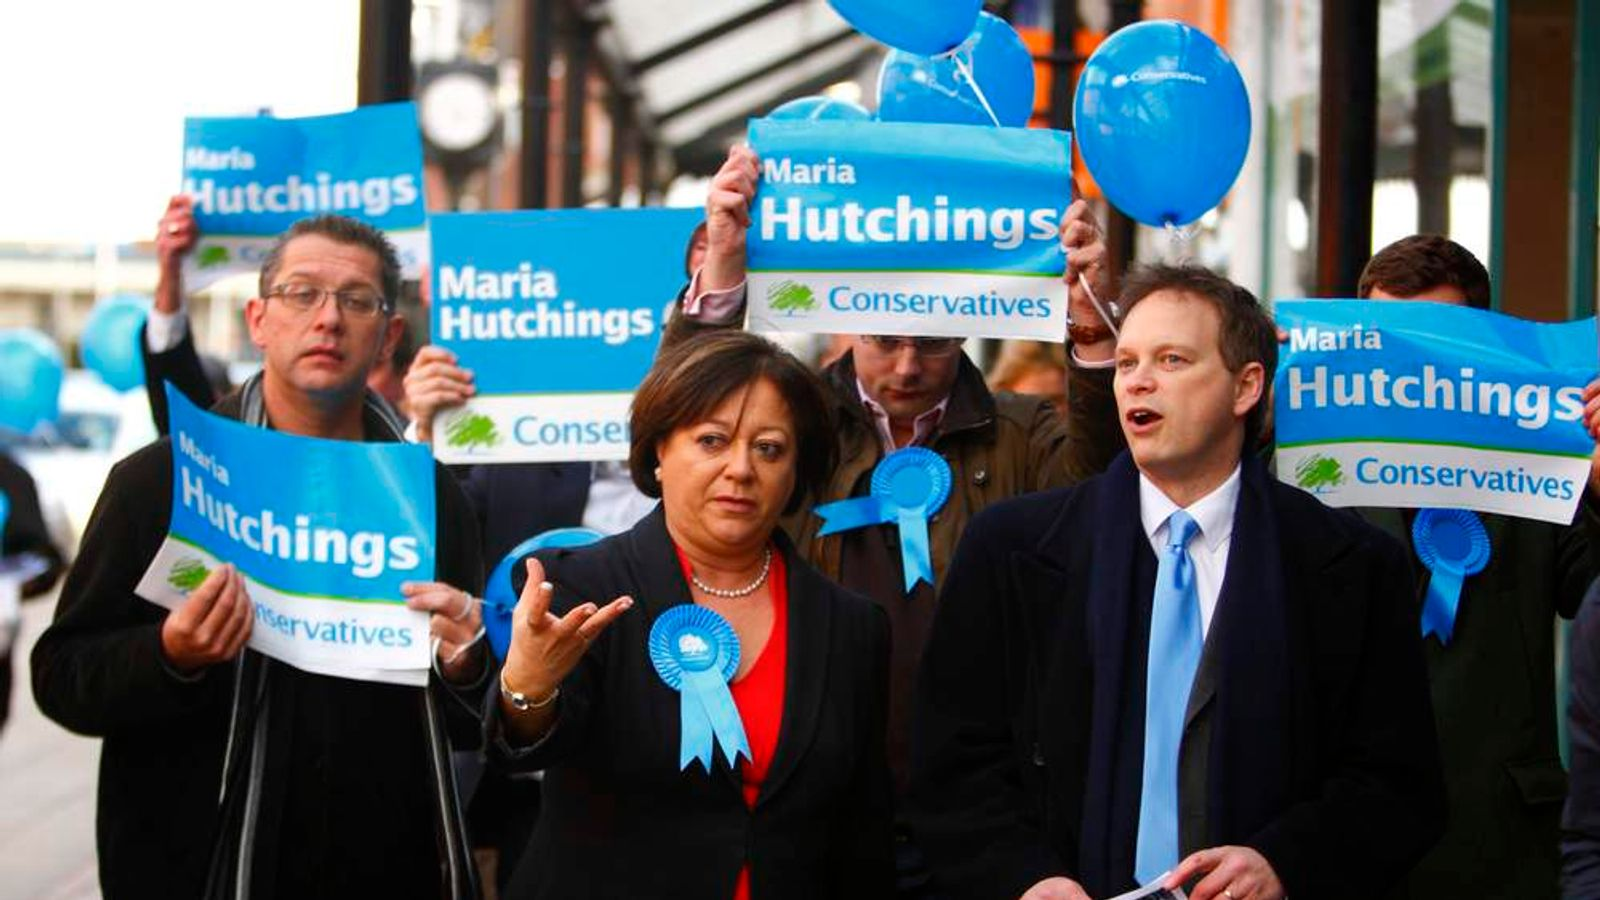 Eastleigh by election betting 5 innings money line betting